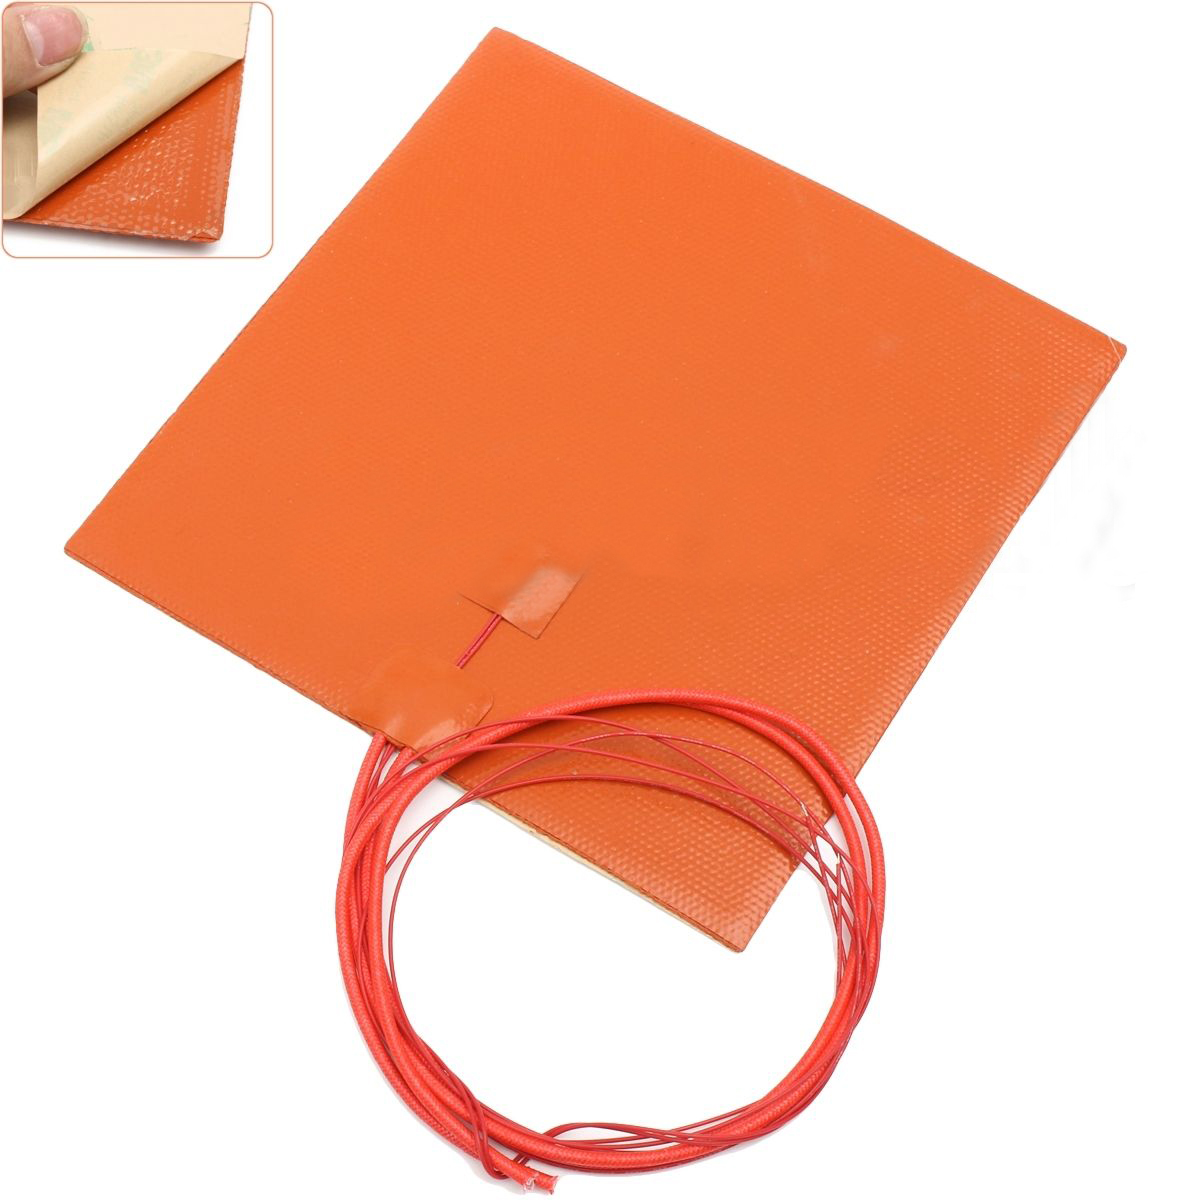 Mayitr Durable 200W 12V Silicone Heater Pad For 3D Printer Heated Bed Thermal Conversion Heating Mat With Lead Wire 200*200mm um 2 go 3d printer parts upgrade silicone rubber heater mat heated bed pt100 sensor for ultimaker 2 go build platform